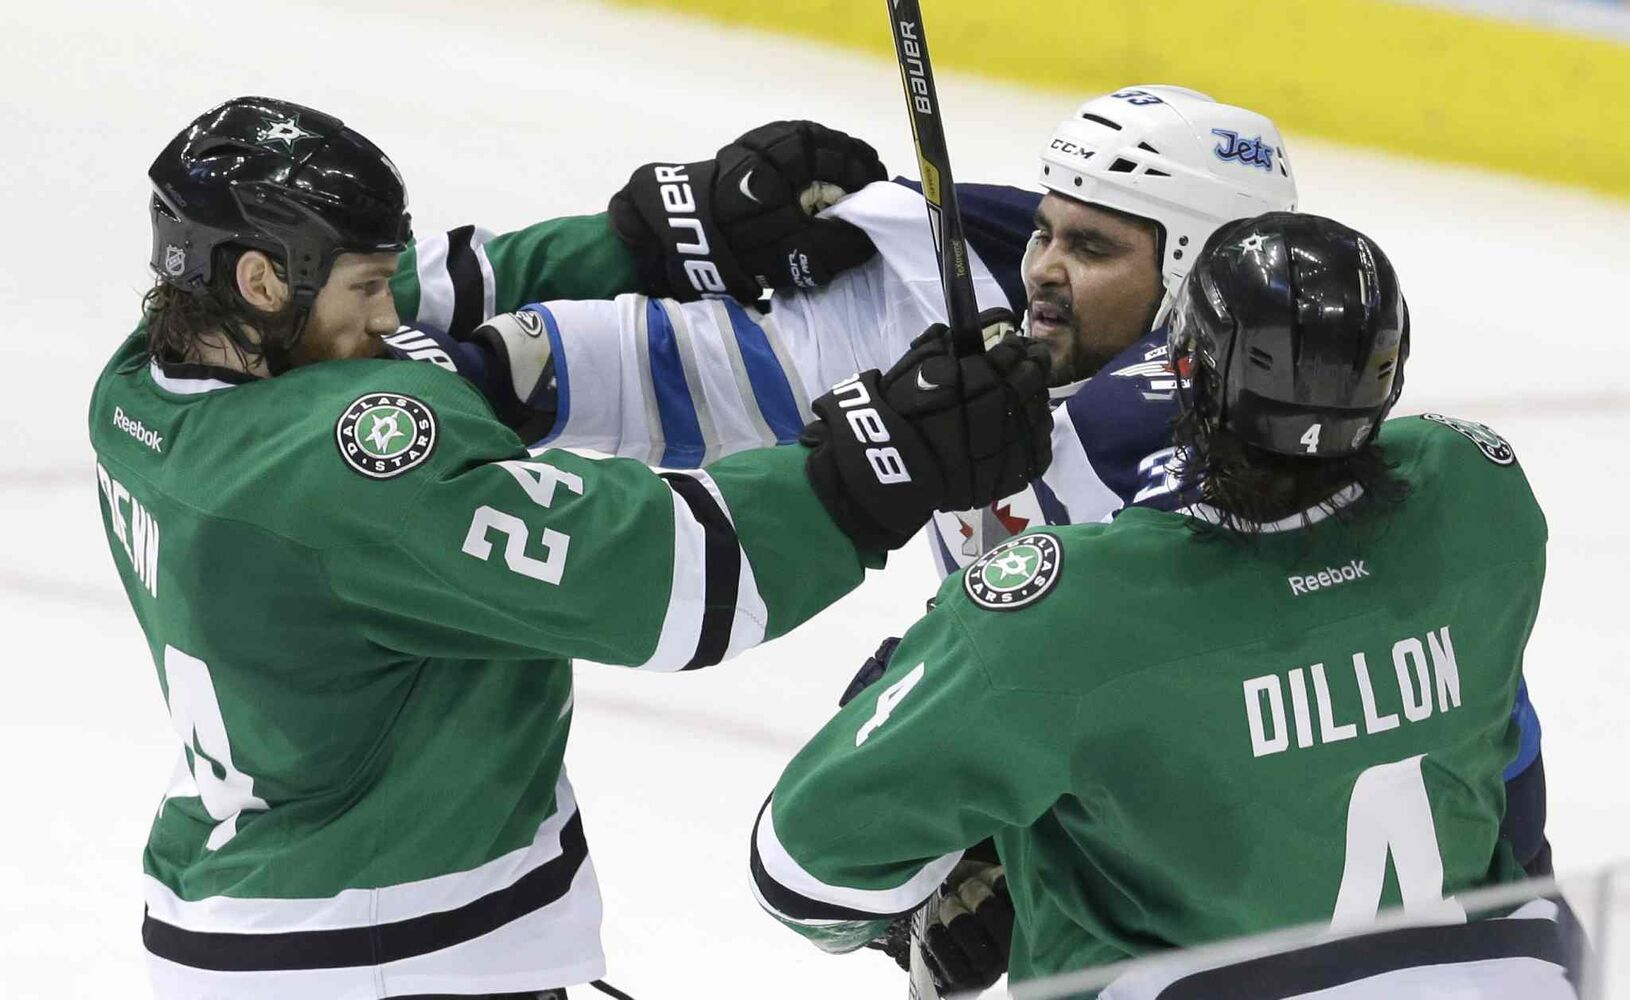 Winnipeg Jets forward Dustin Byfuglien tangles with Dallas Stars defencemen Jordie Benn (left) and Brenden Dillon during the third period. (L.M. OTERO / THE ASSOCIATED PRESS)